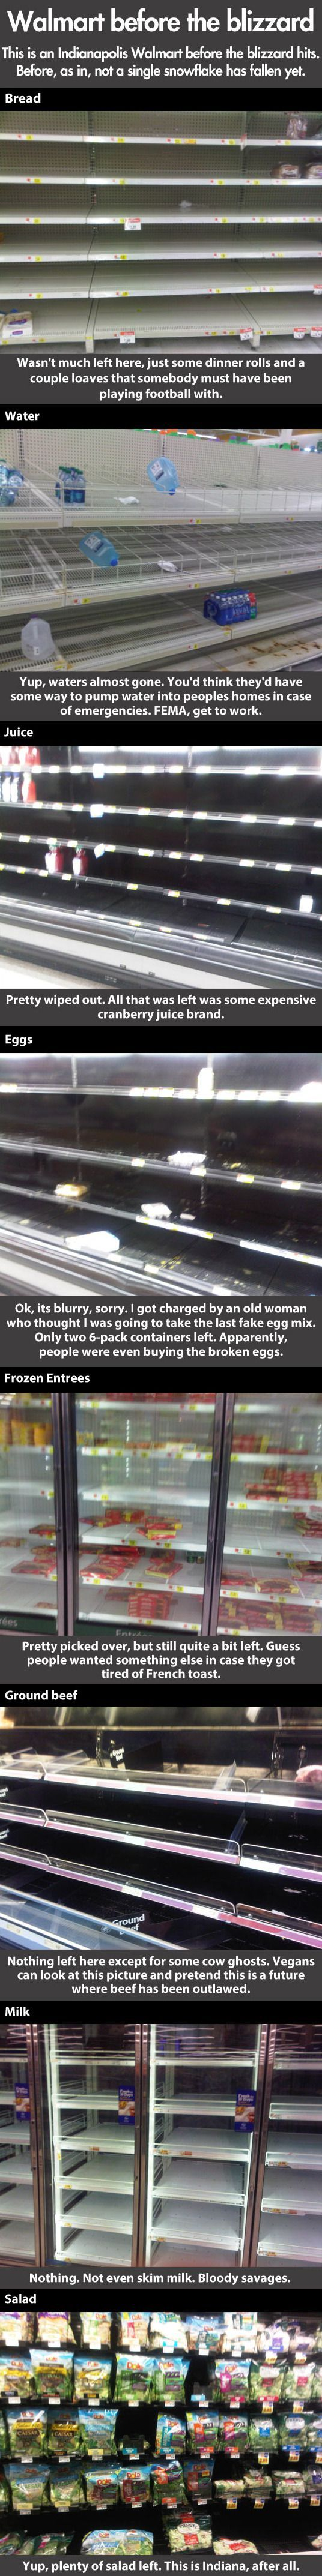 "This is extra funny because it's Indianapolis. I wonder if it's the same day the lady stole the milk (that I WAS NOT buying for the ""blizzard"") right out of my basket."